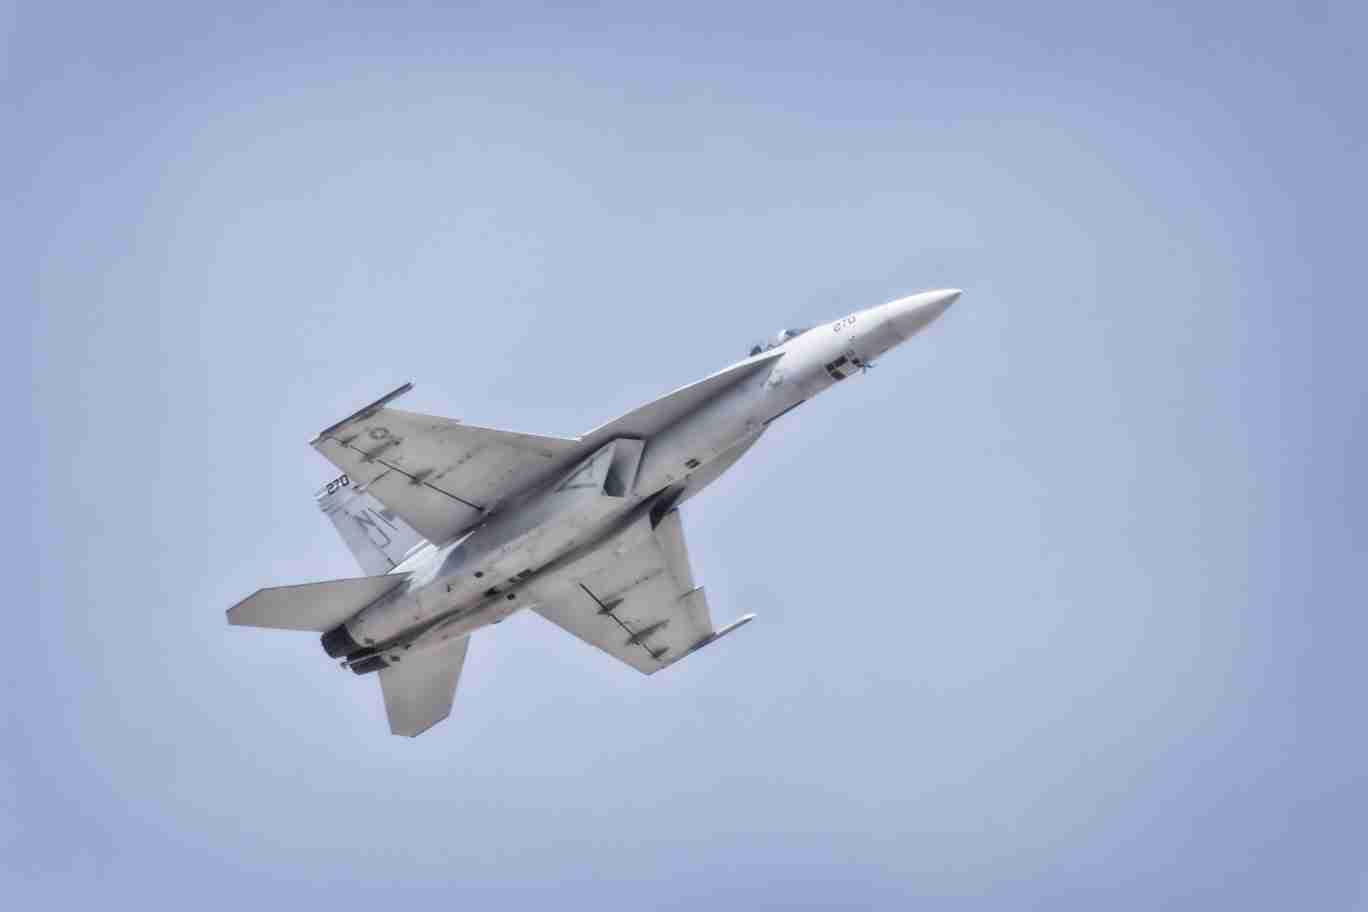 F/A-18 Super Hornet Flying Upward